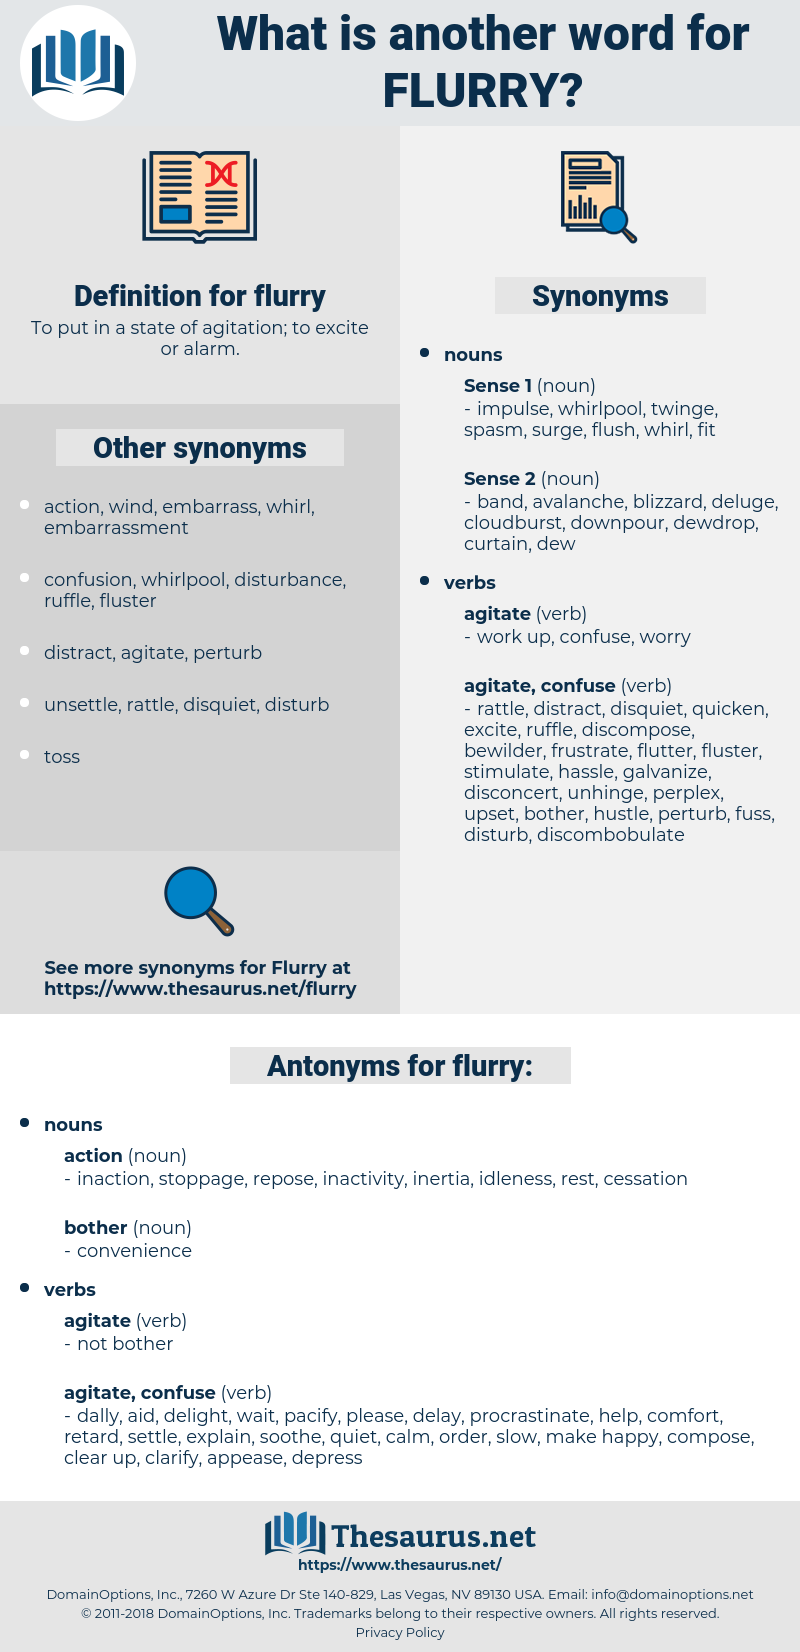 flurry, synonym flurry, another word for flurry, words like flurry, thesaurus flurry